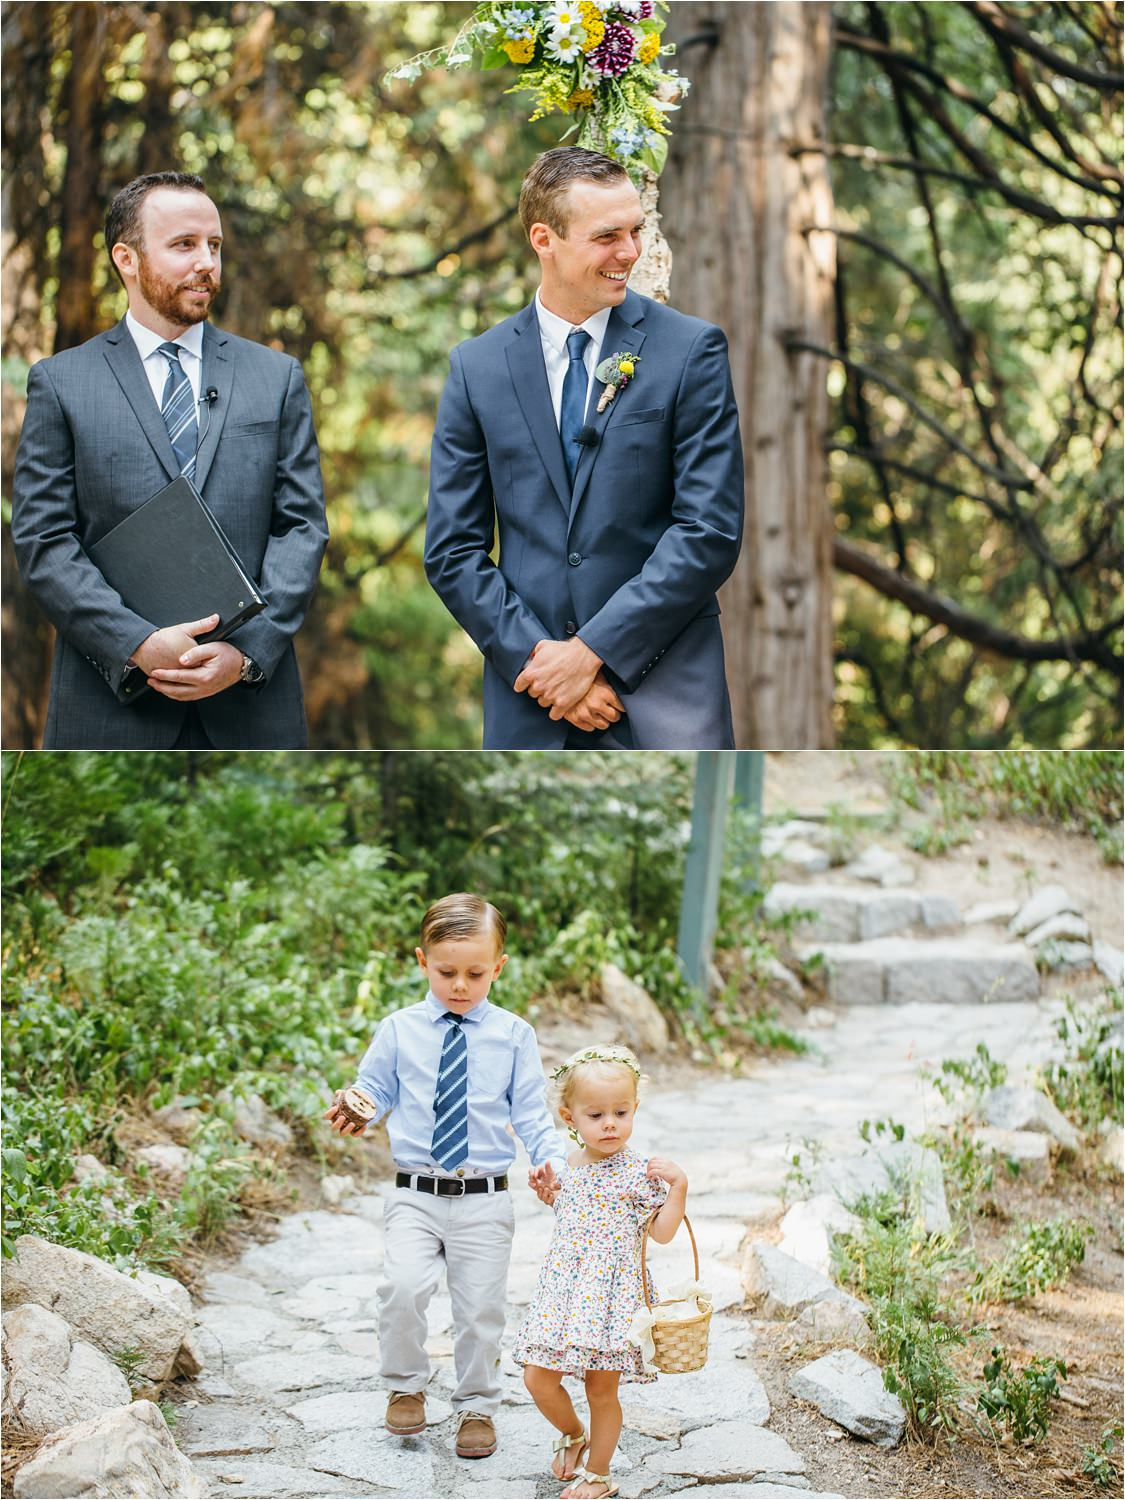 Mountain Wedding Ceremony - Lake Arrowhead Wedding Ceremony - https://brittneyhannonphotography.com